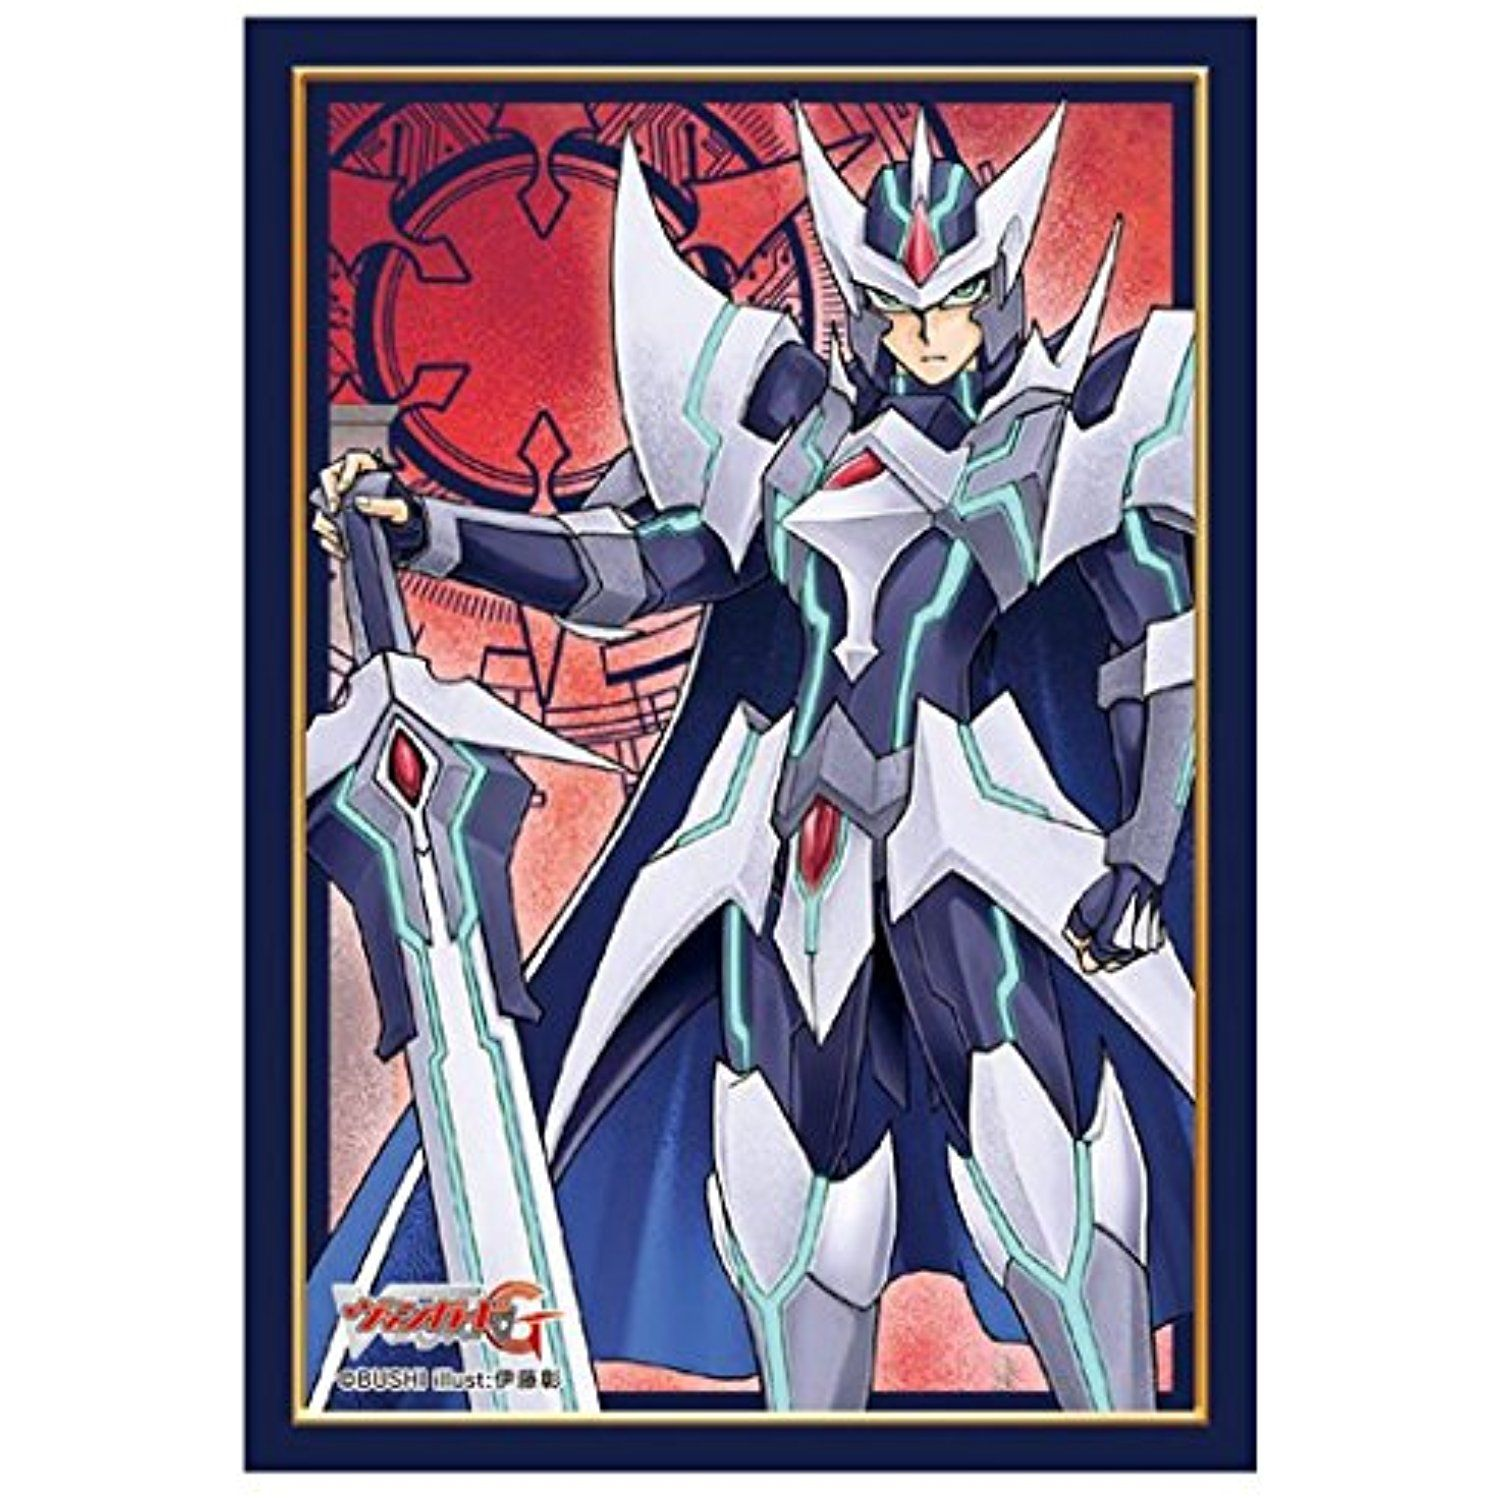 Vanguard G Blaster Blade Exceed Mini Card Game Character